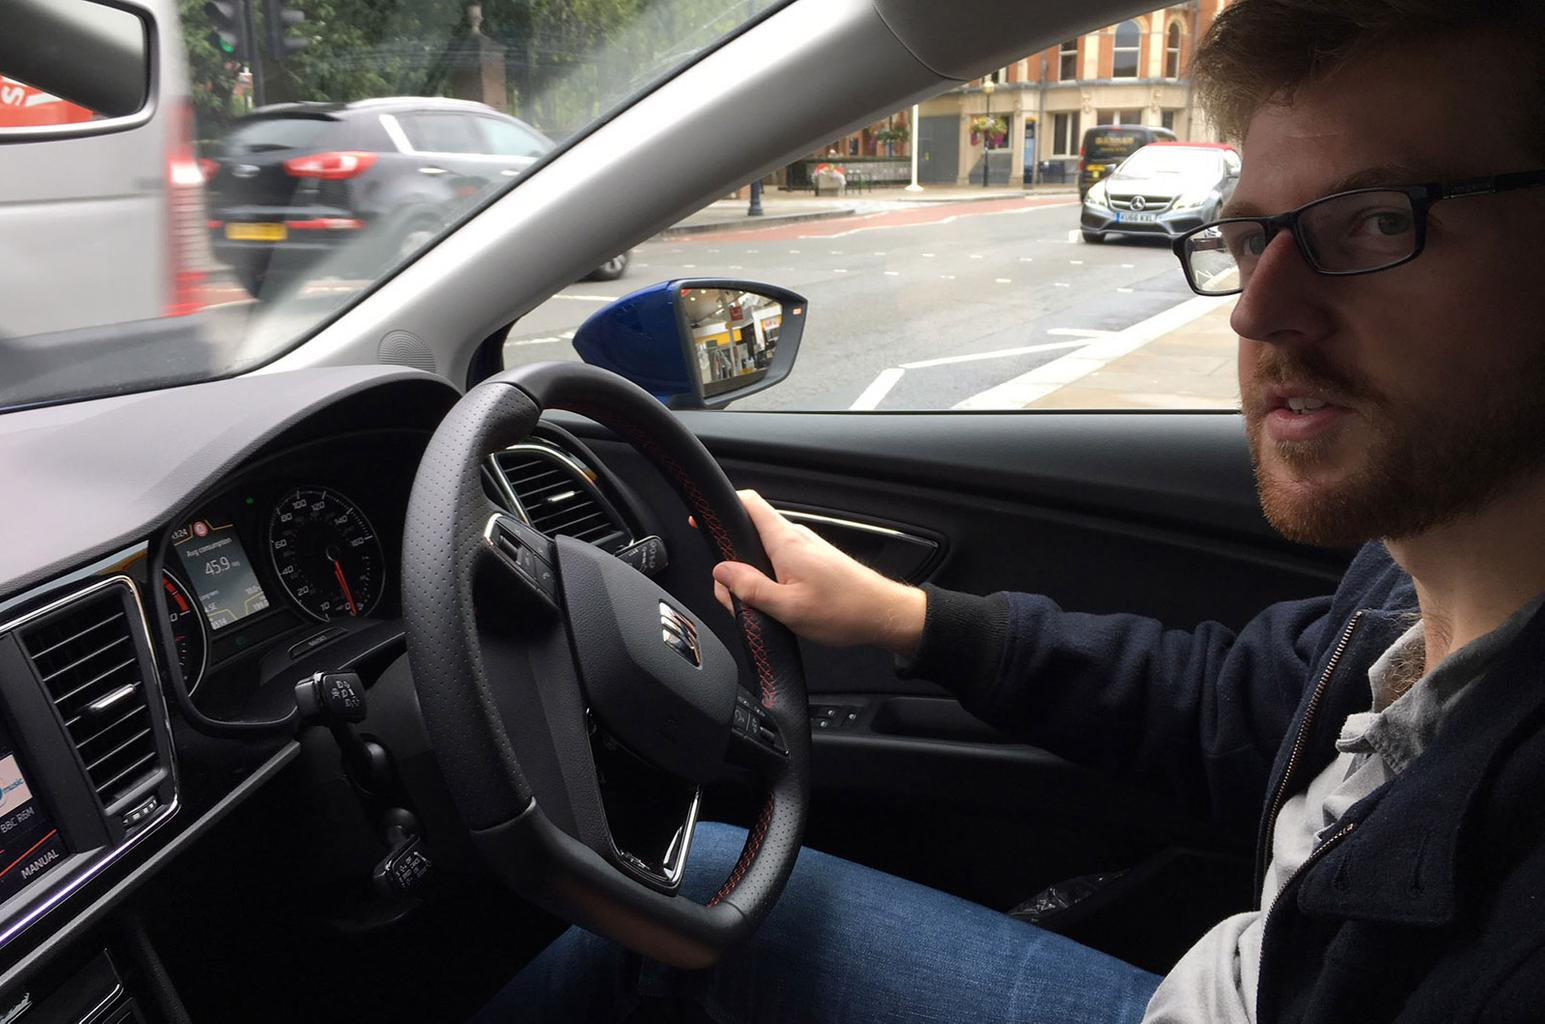 Used Seat Leon (2013-present) long-term test review